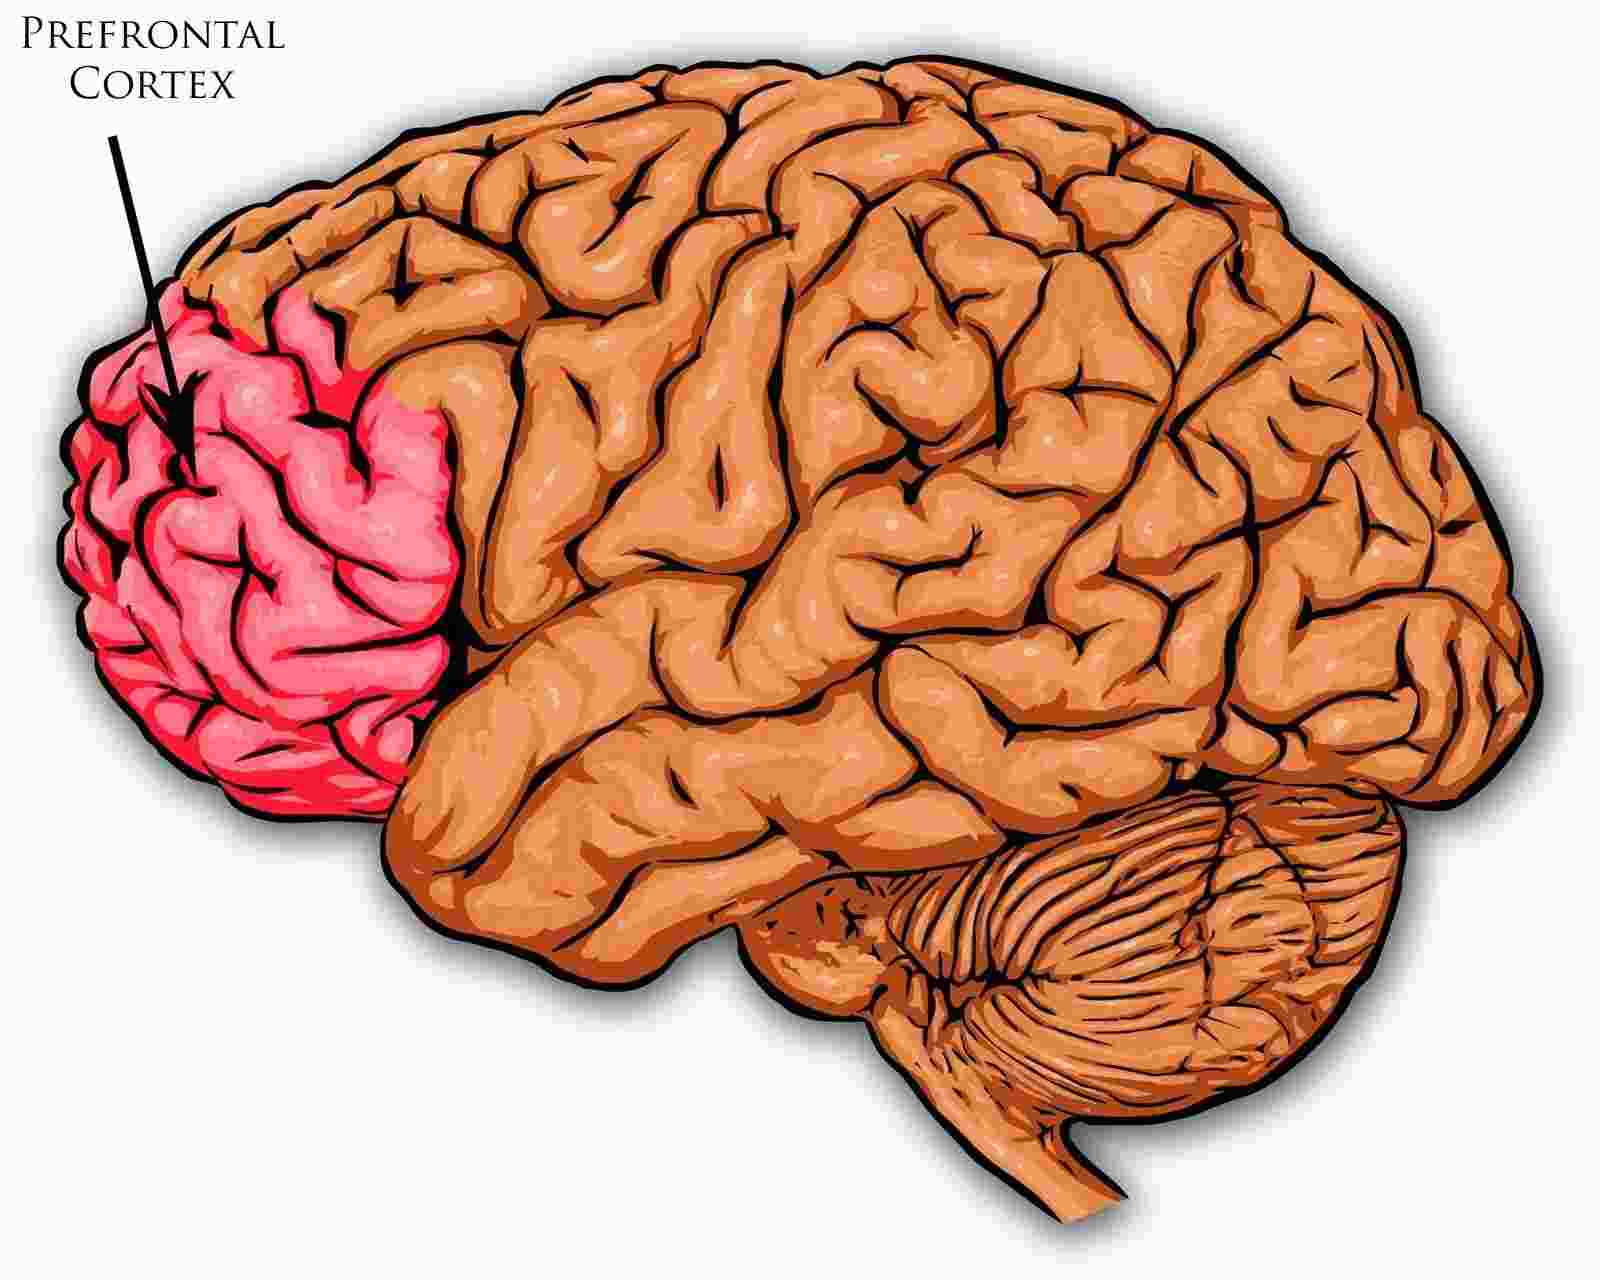 Astronaut Abby_How to Stop Procrastinating Today_Prefrontal Cortex_The Mars Generation